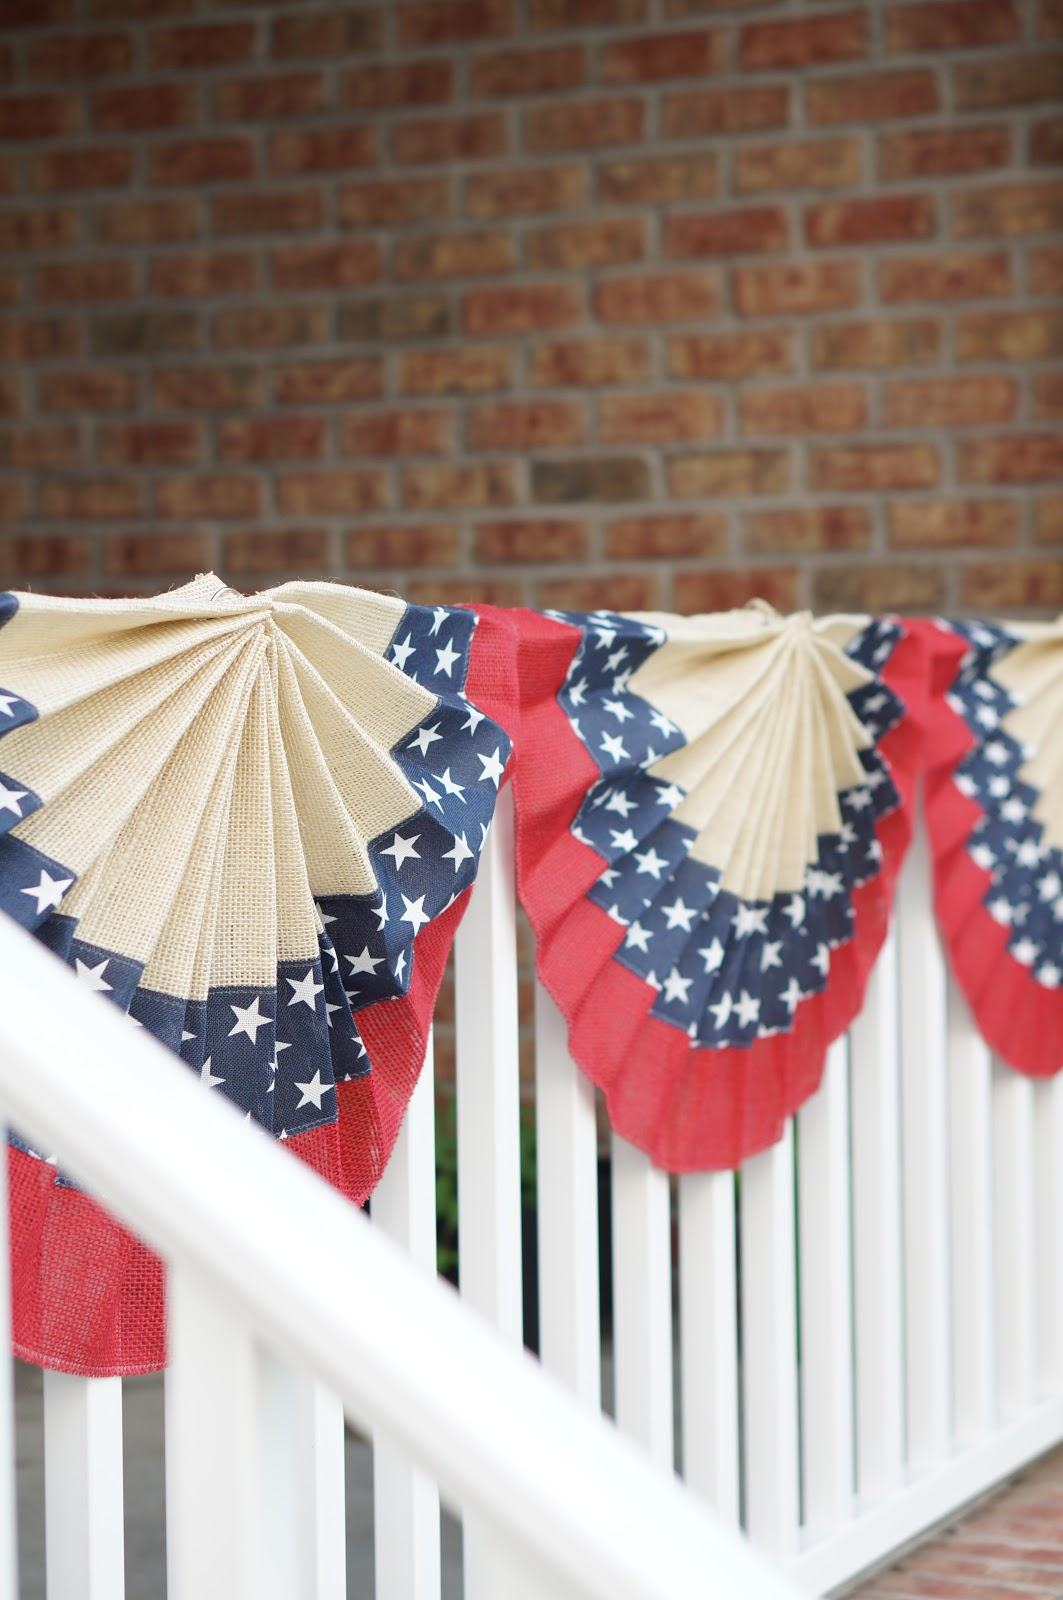 Popular North Carolina blogger Rebecca Lately shares her porch refresh for the Fourth of July.  Check it out if you love seasonal decor!